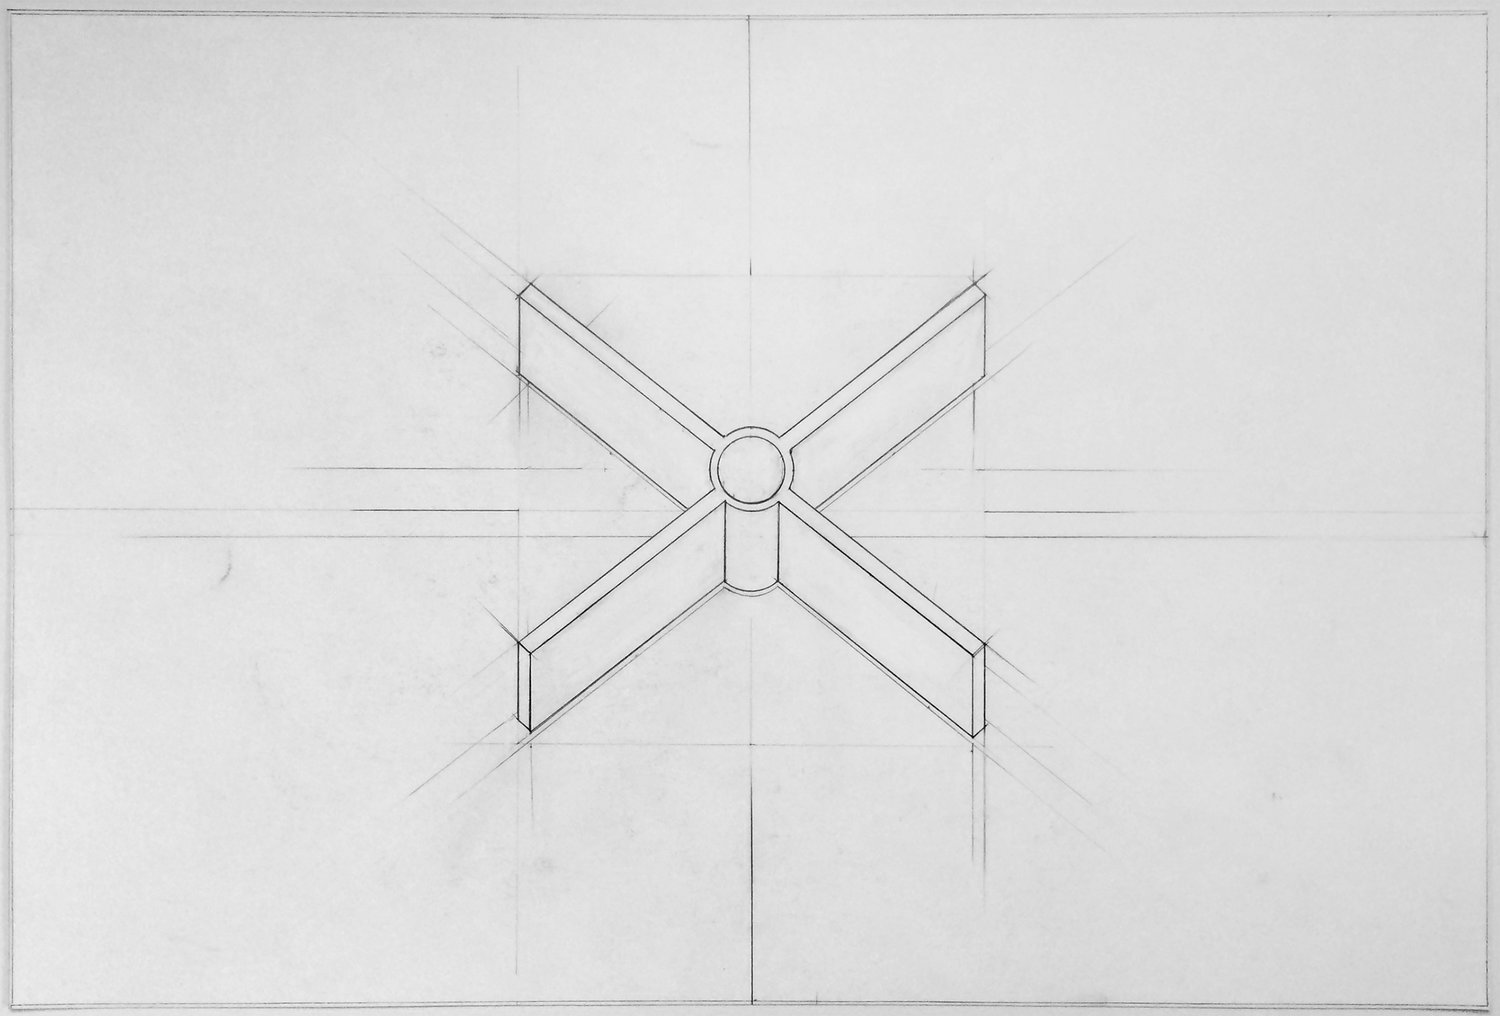 Shows 5 Cooper Wiring Diagrams Mini Diagram Jensen Tom Miller Observational Architecture 18 X 25 1 2 Inches Graphite On Bristol 2017